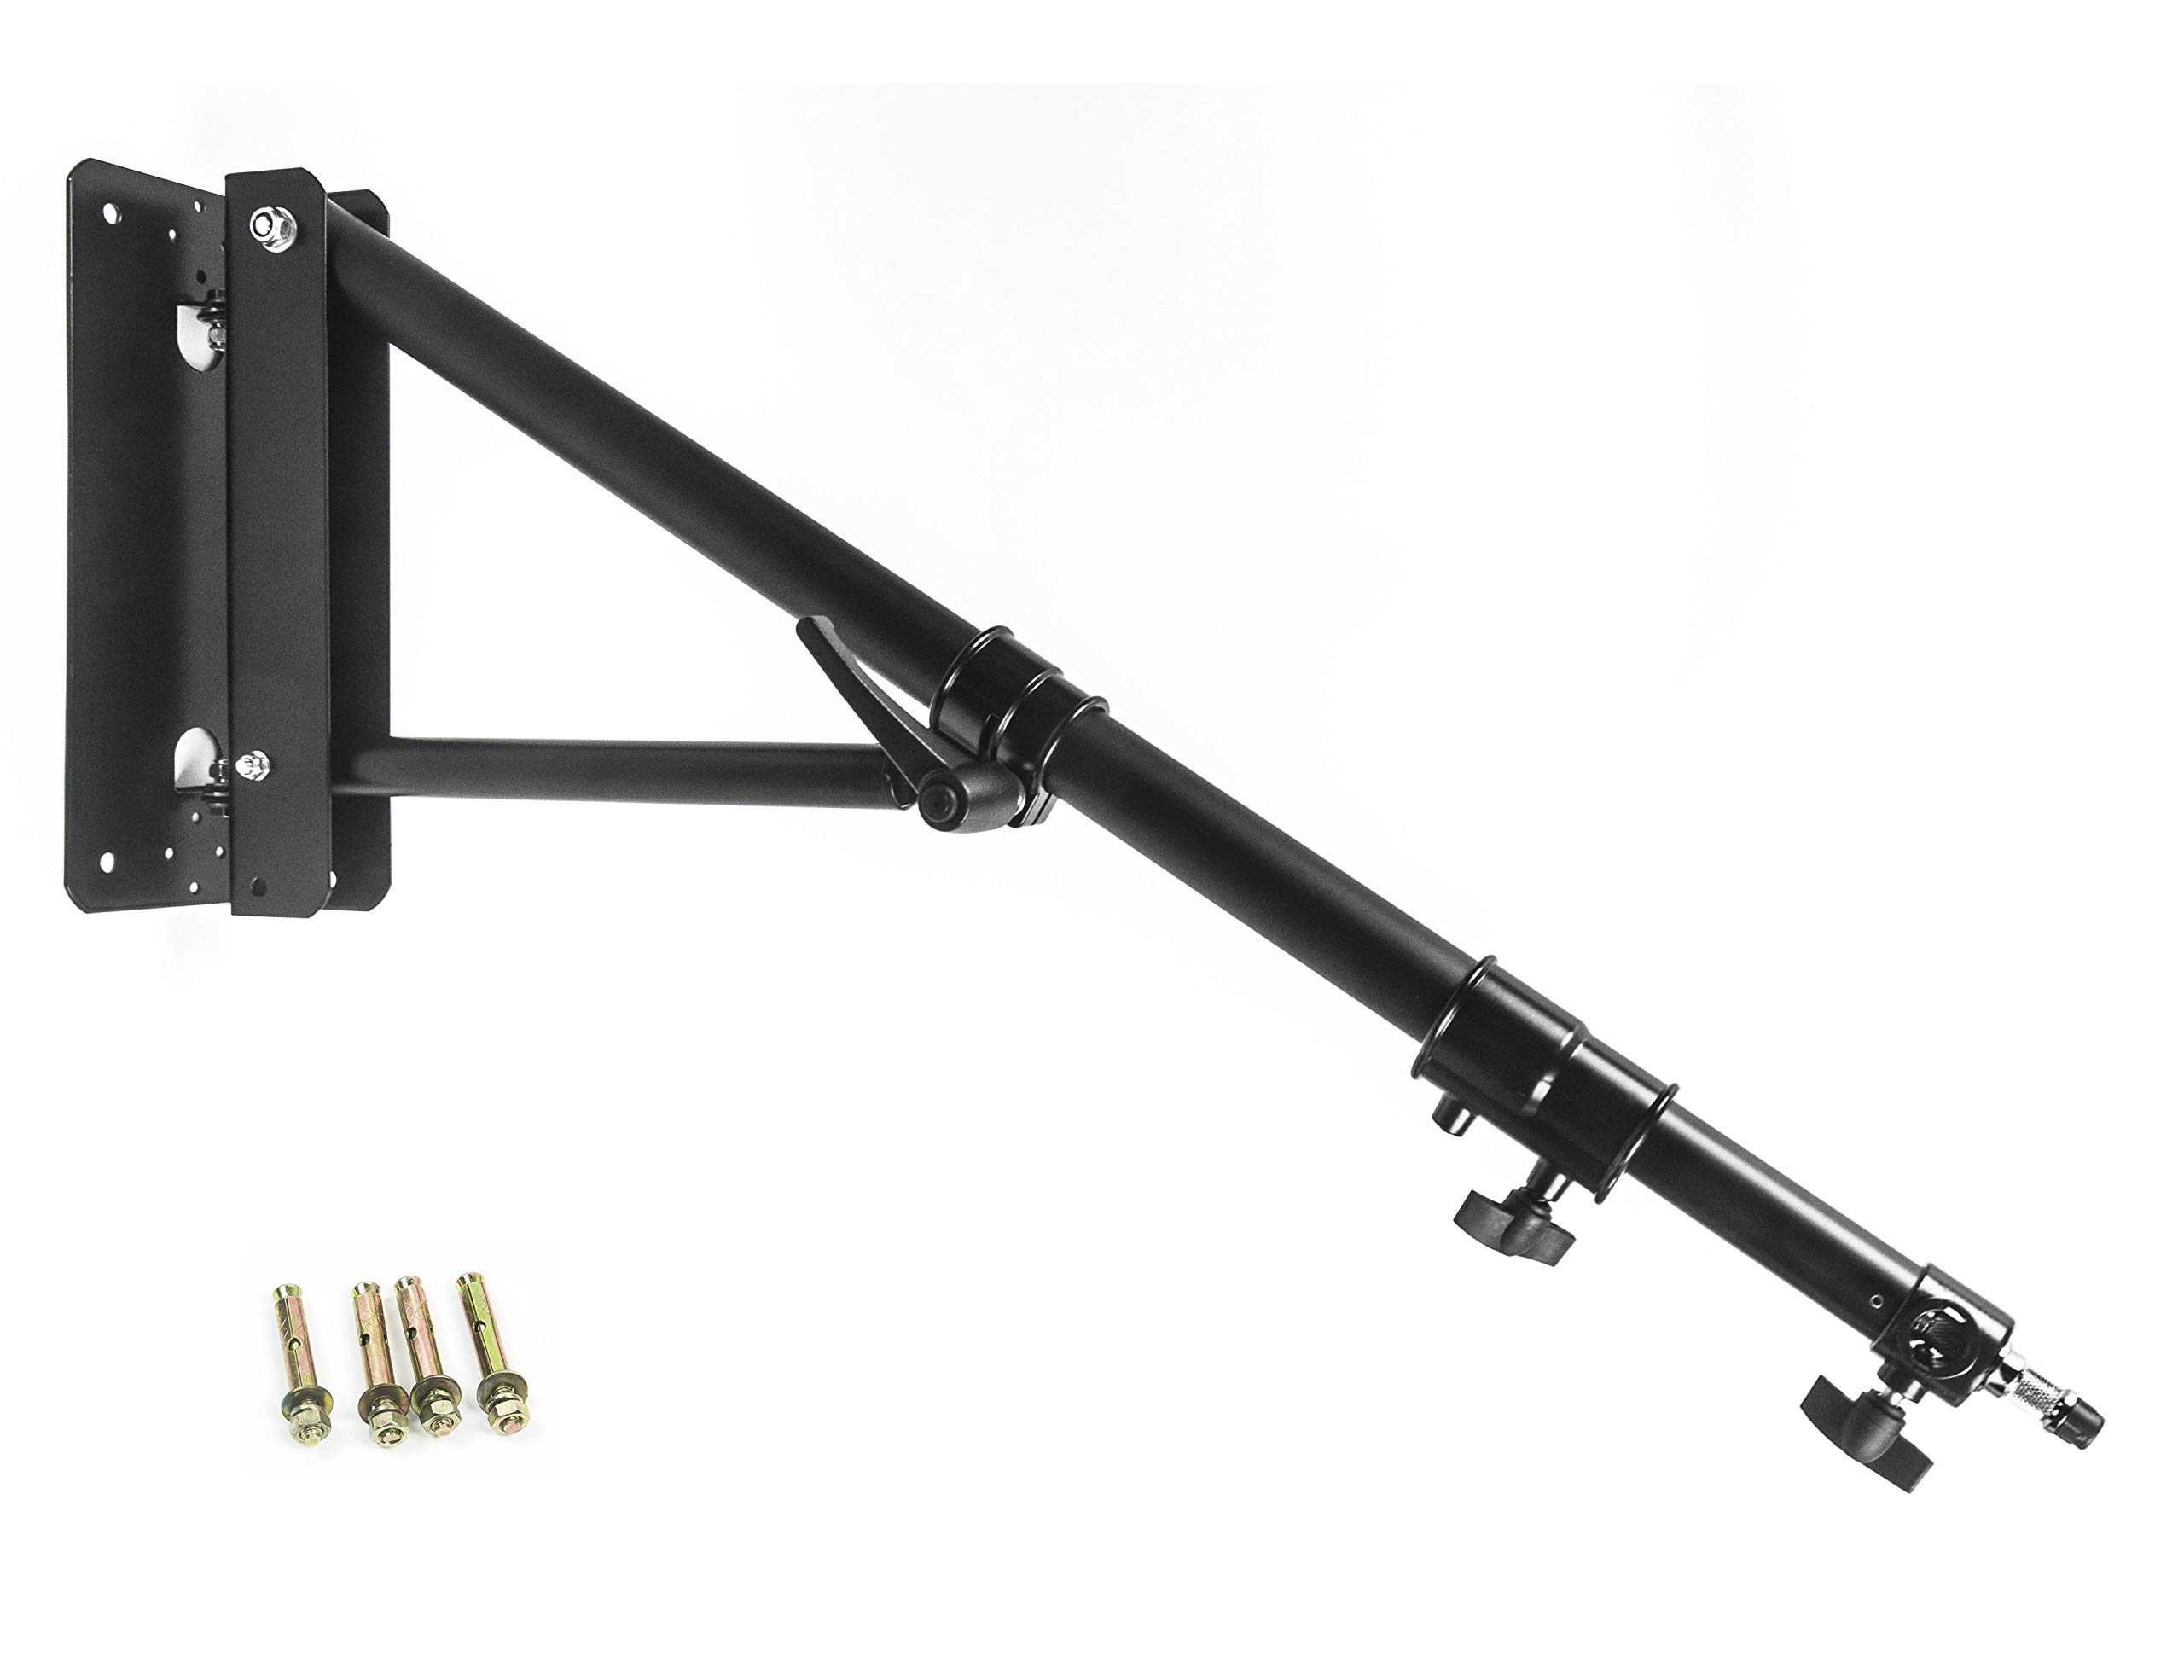 PHOCUS Wall Mount Boom Arm for Photography Studio Video Strobe Lights, Max Length 51 inches /130 cm, Horizontal and Vertical Rotatable by Phocus